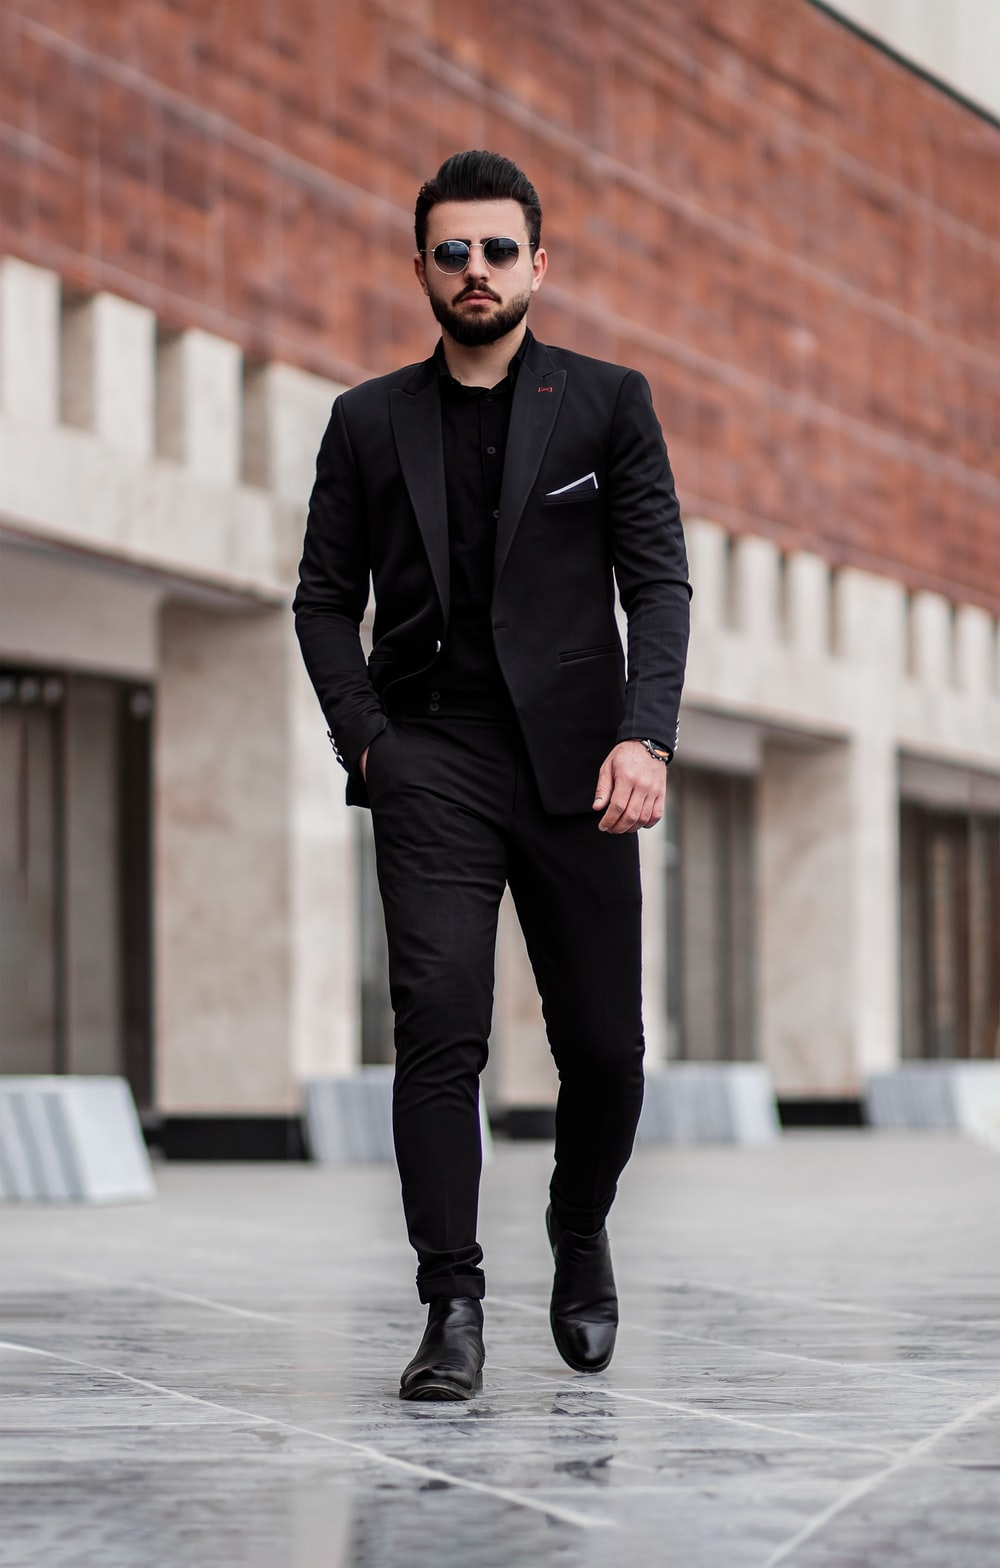 man in black suit jacket and black pants standing on gray concrete floor during daytime